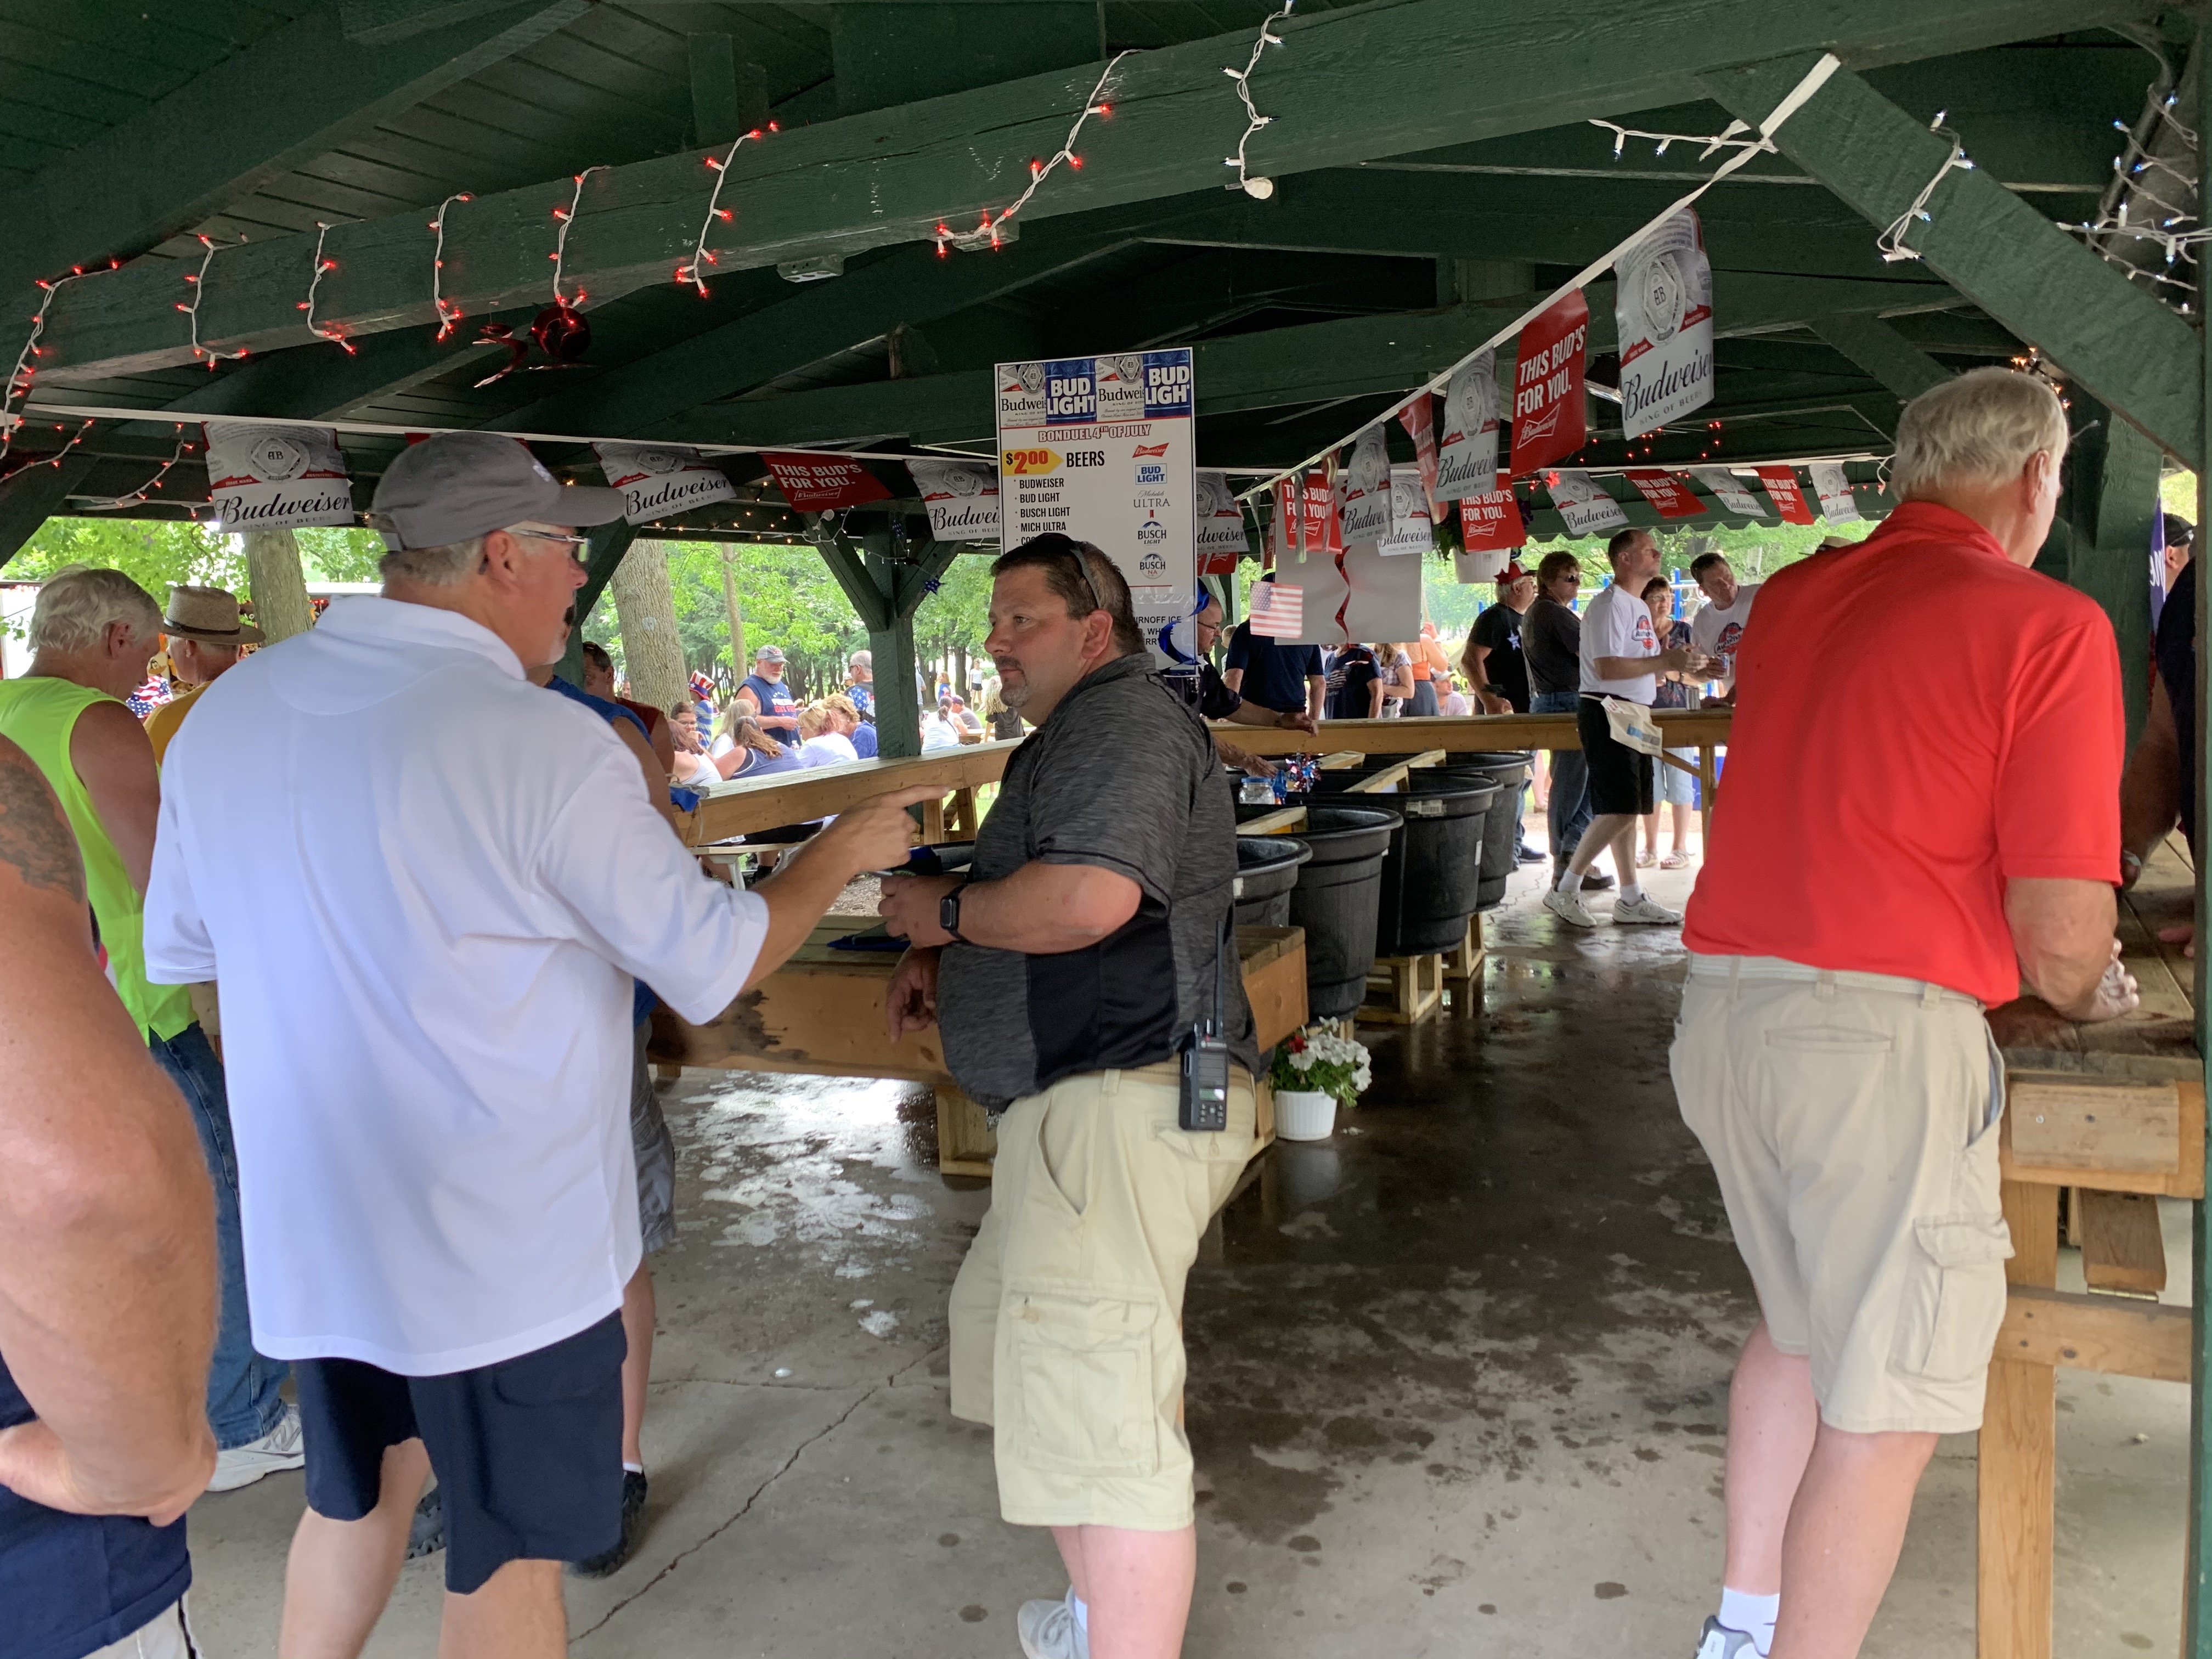 One of the most popular attractions at Village Park in Bonduel was the beer tent. Many visitors caught up with each other over a cold beverage July 4.Luke Reimer | NEW Media